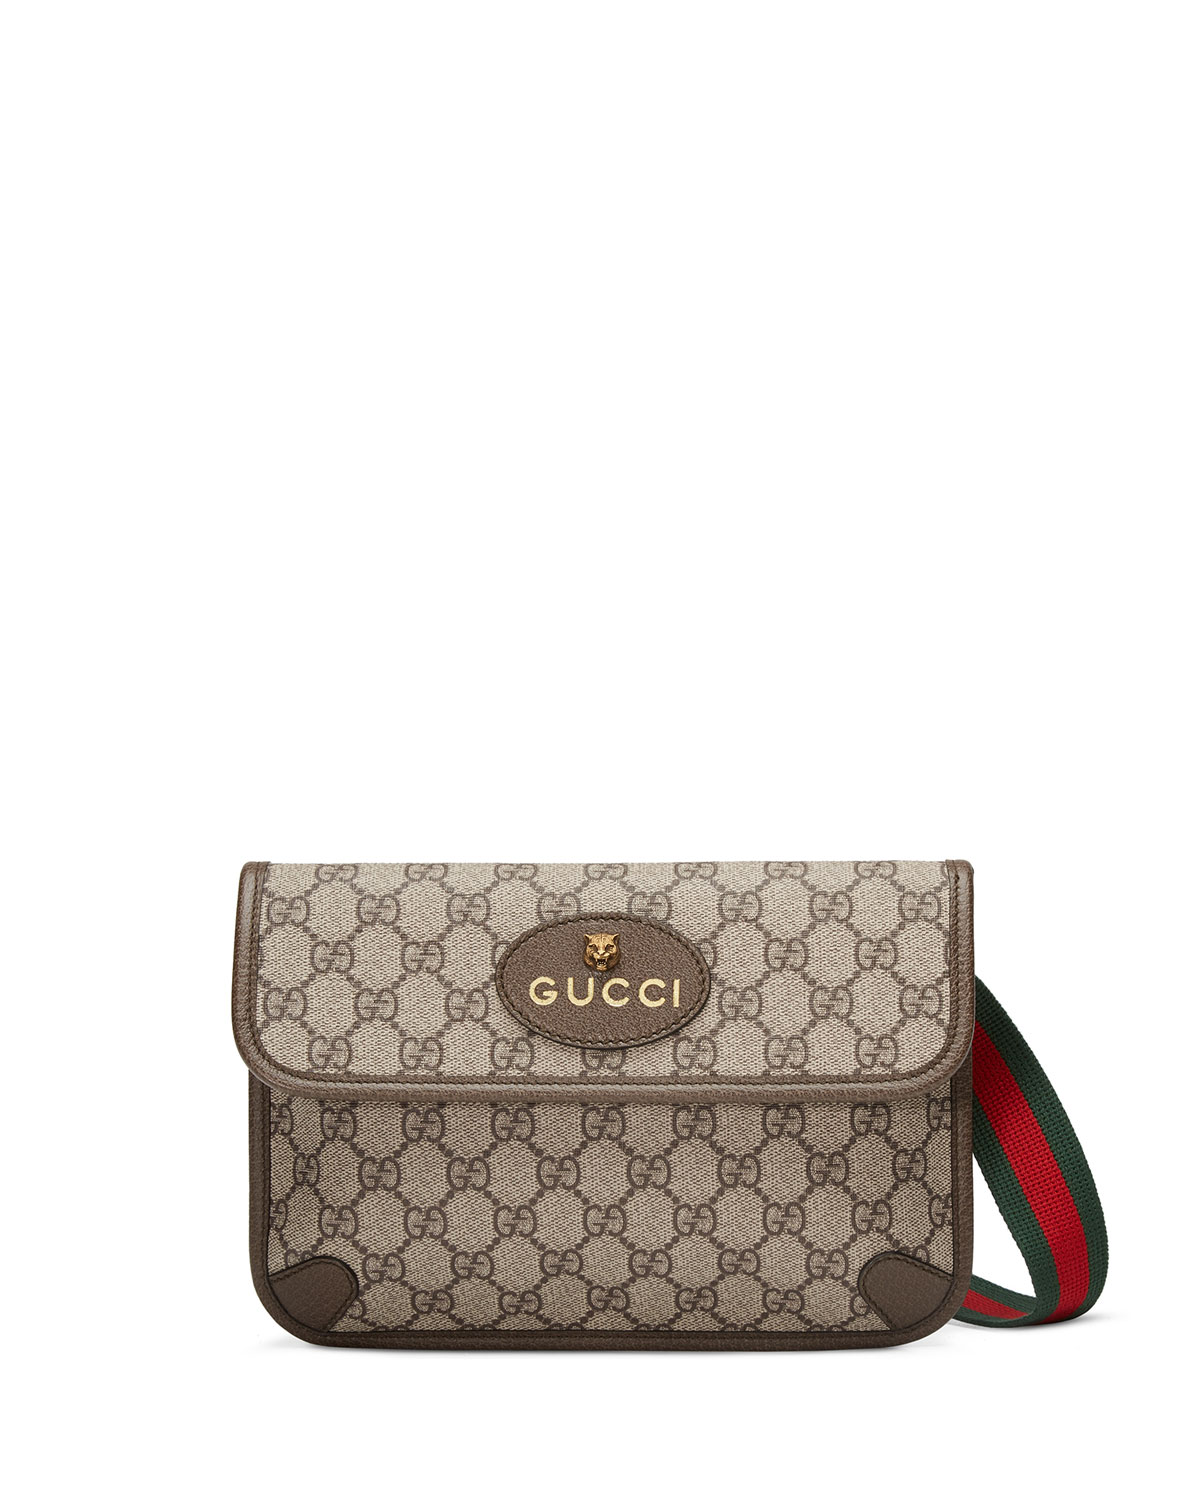 e8567019e30e38 Gucci Belt Bag For Mens | Stanford Center for Opportunity Policy in ...